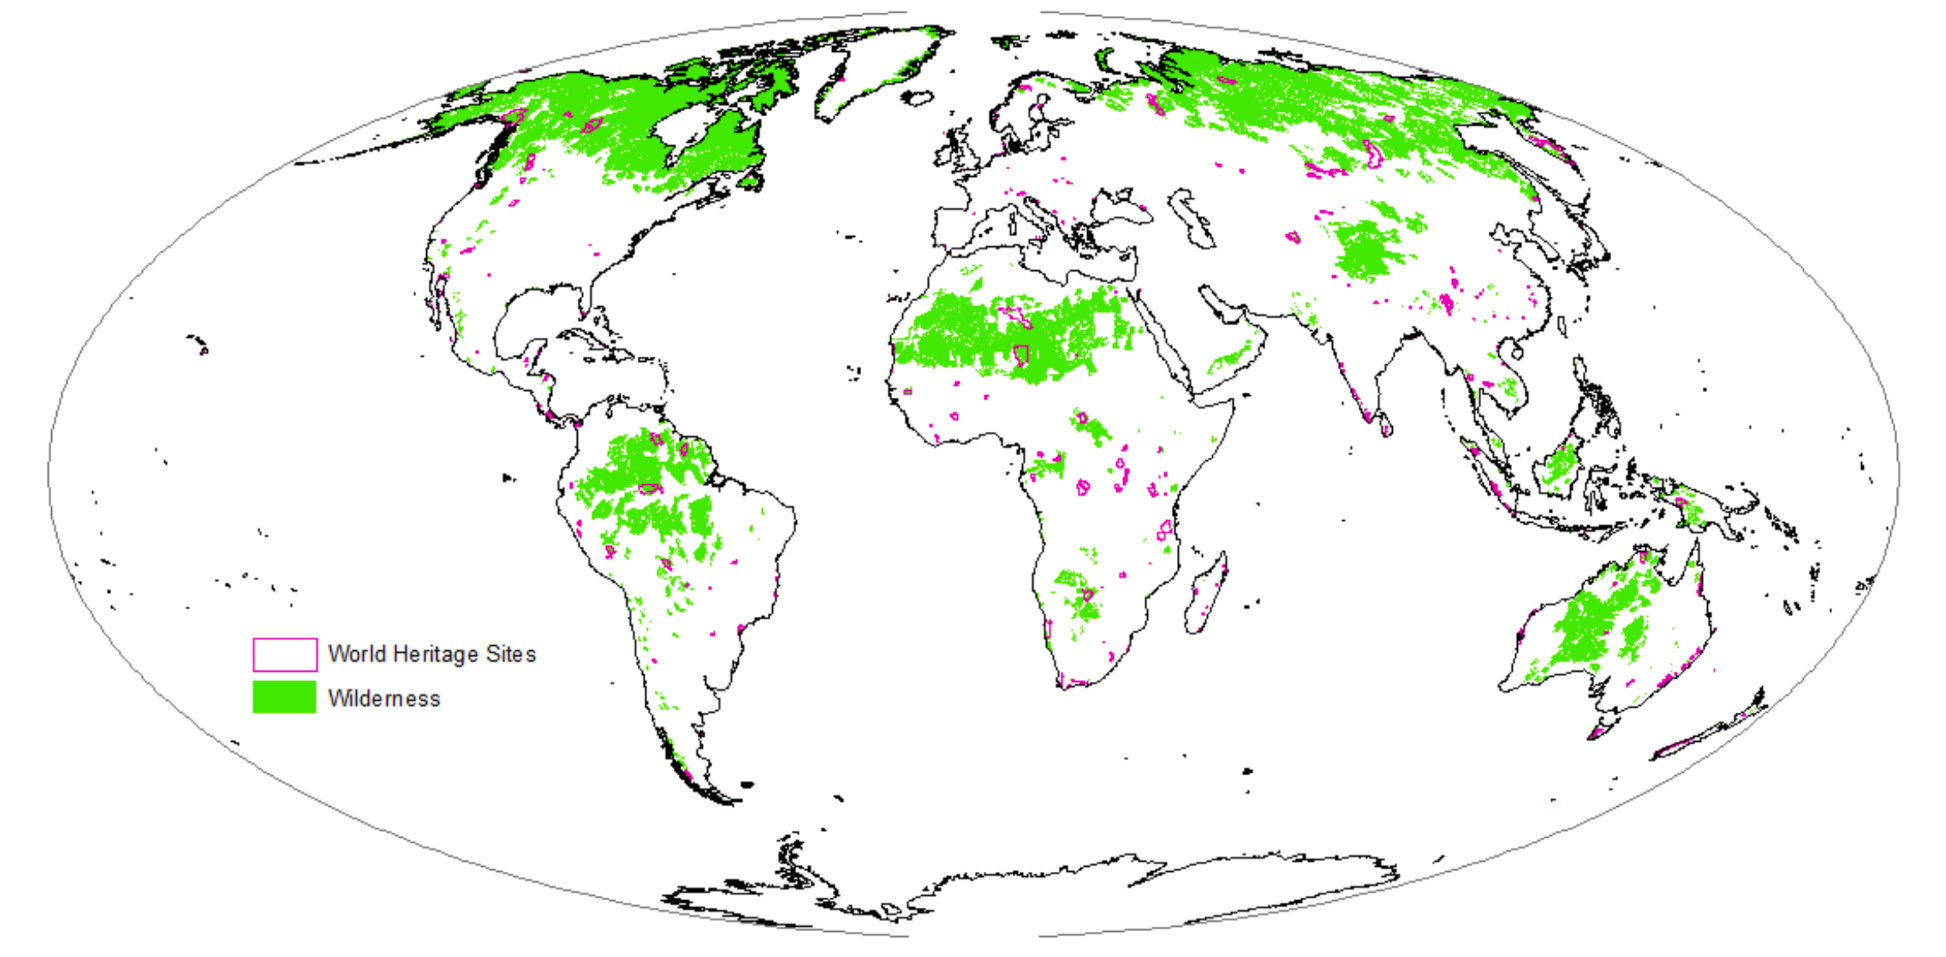 Very Little Of The Worldu0027s Wilderness (green) Is Within Natural World  Heritage Sites (pink). Author Provided